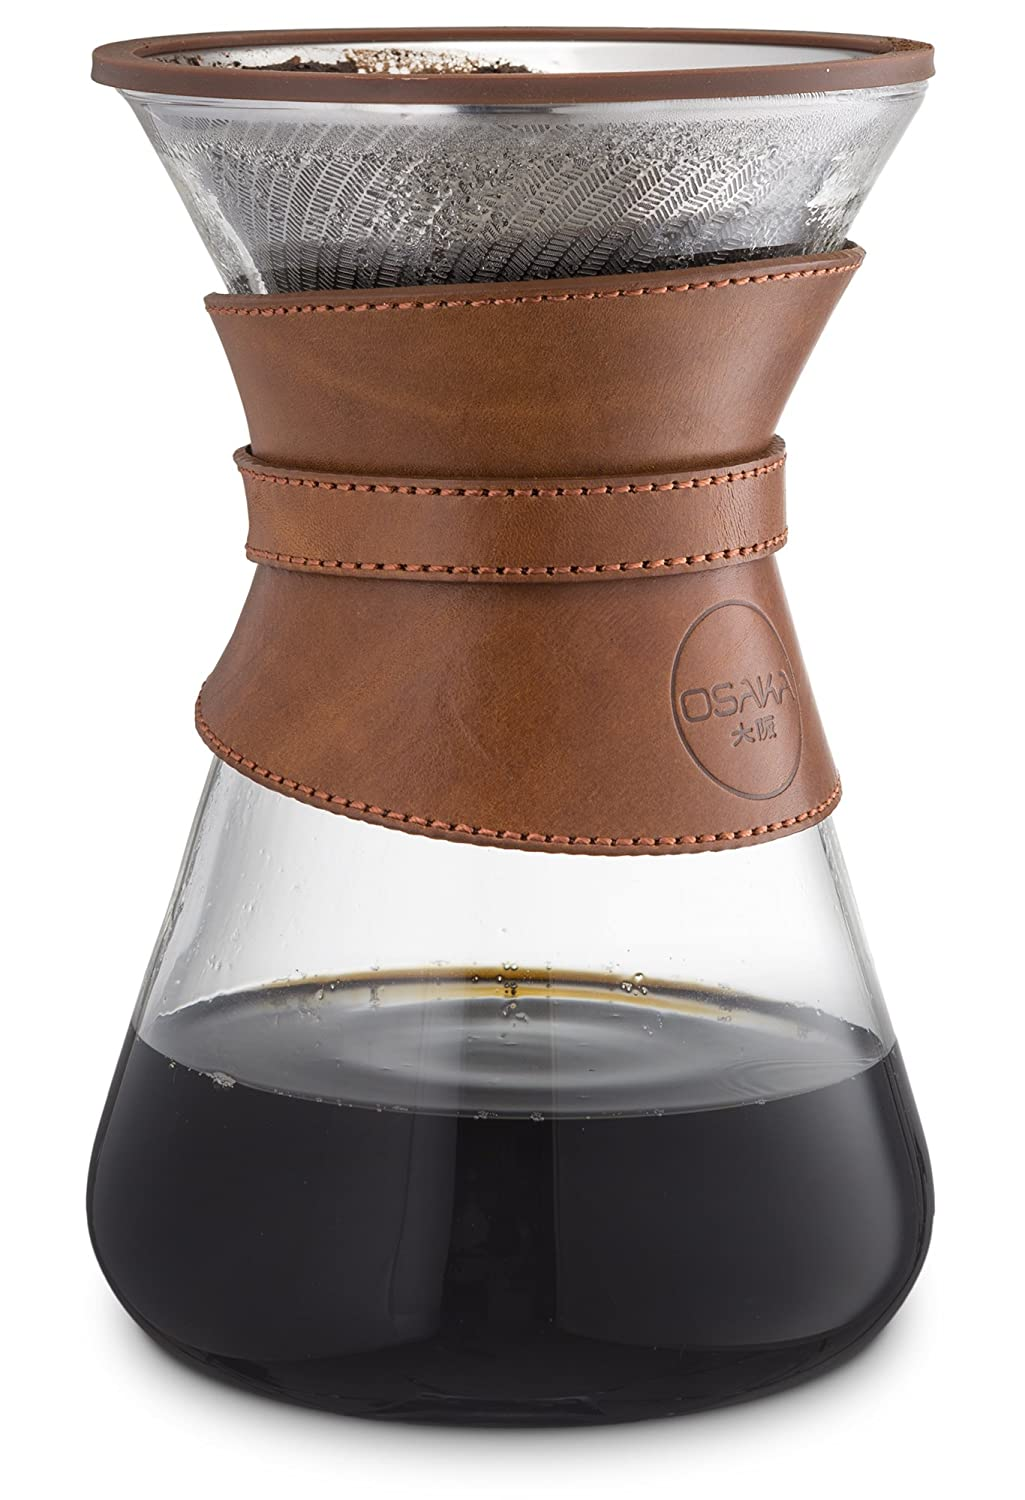 Premium Pour-Over Coffee Maker - Glass Carafe With Genuine Leather Collar and Double Mesh Stainless Steel Filter with Unique Flow Design